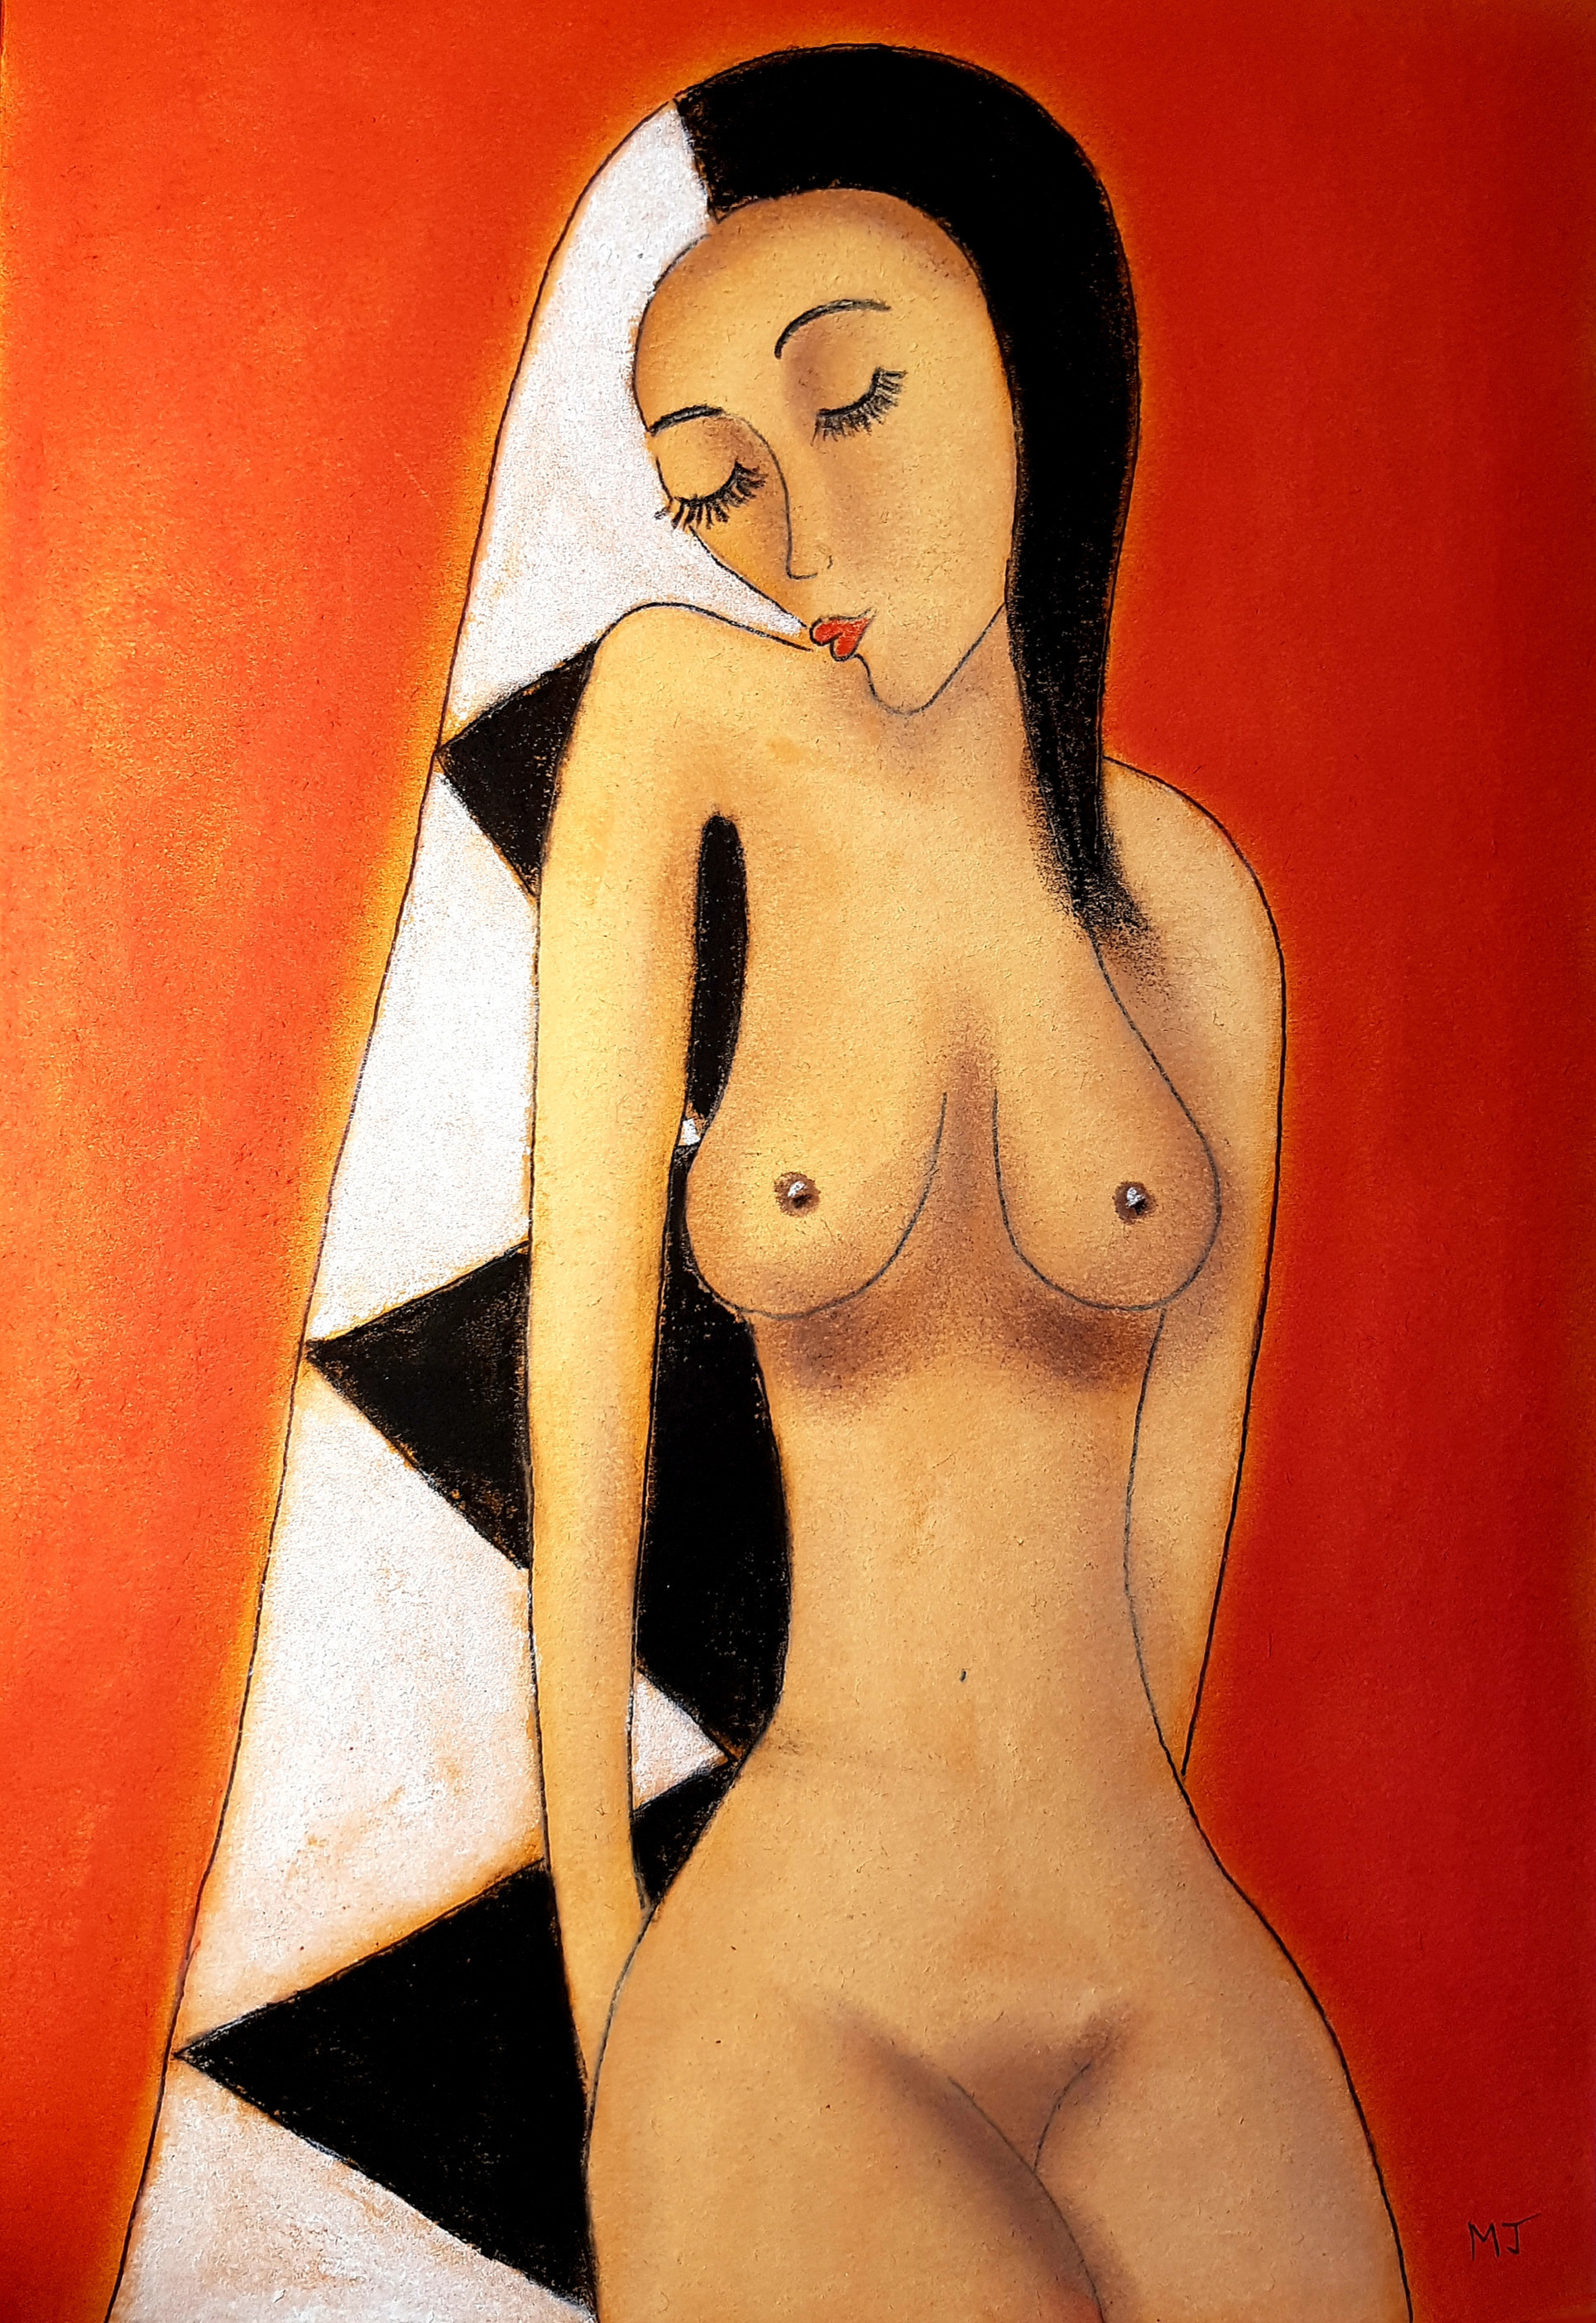 Javorkova Marie; She Is One, 2005, Original Painting Oil, 30 x 21 cm.